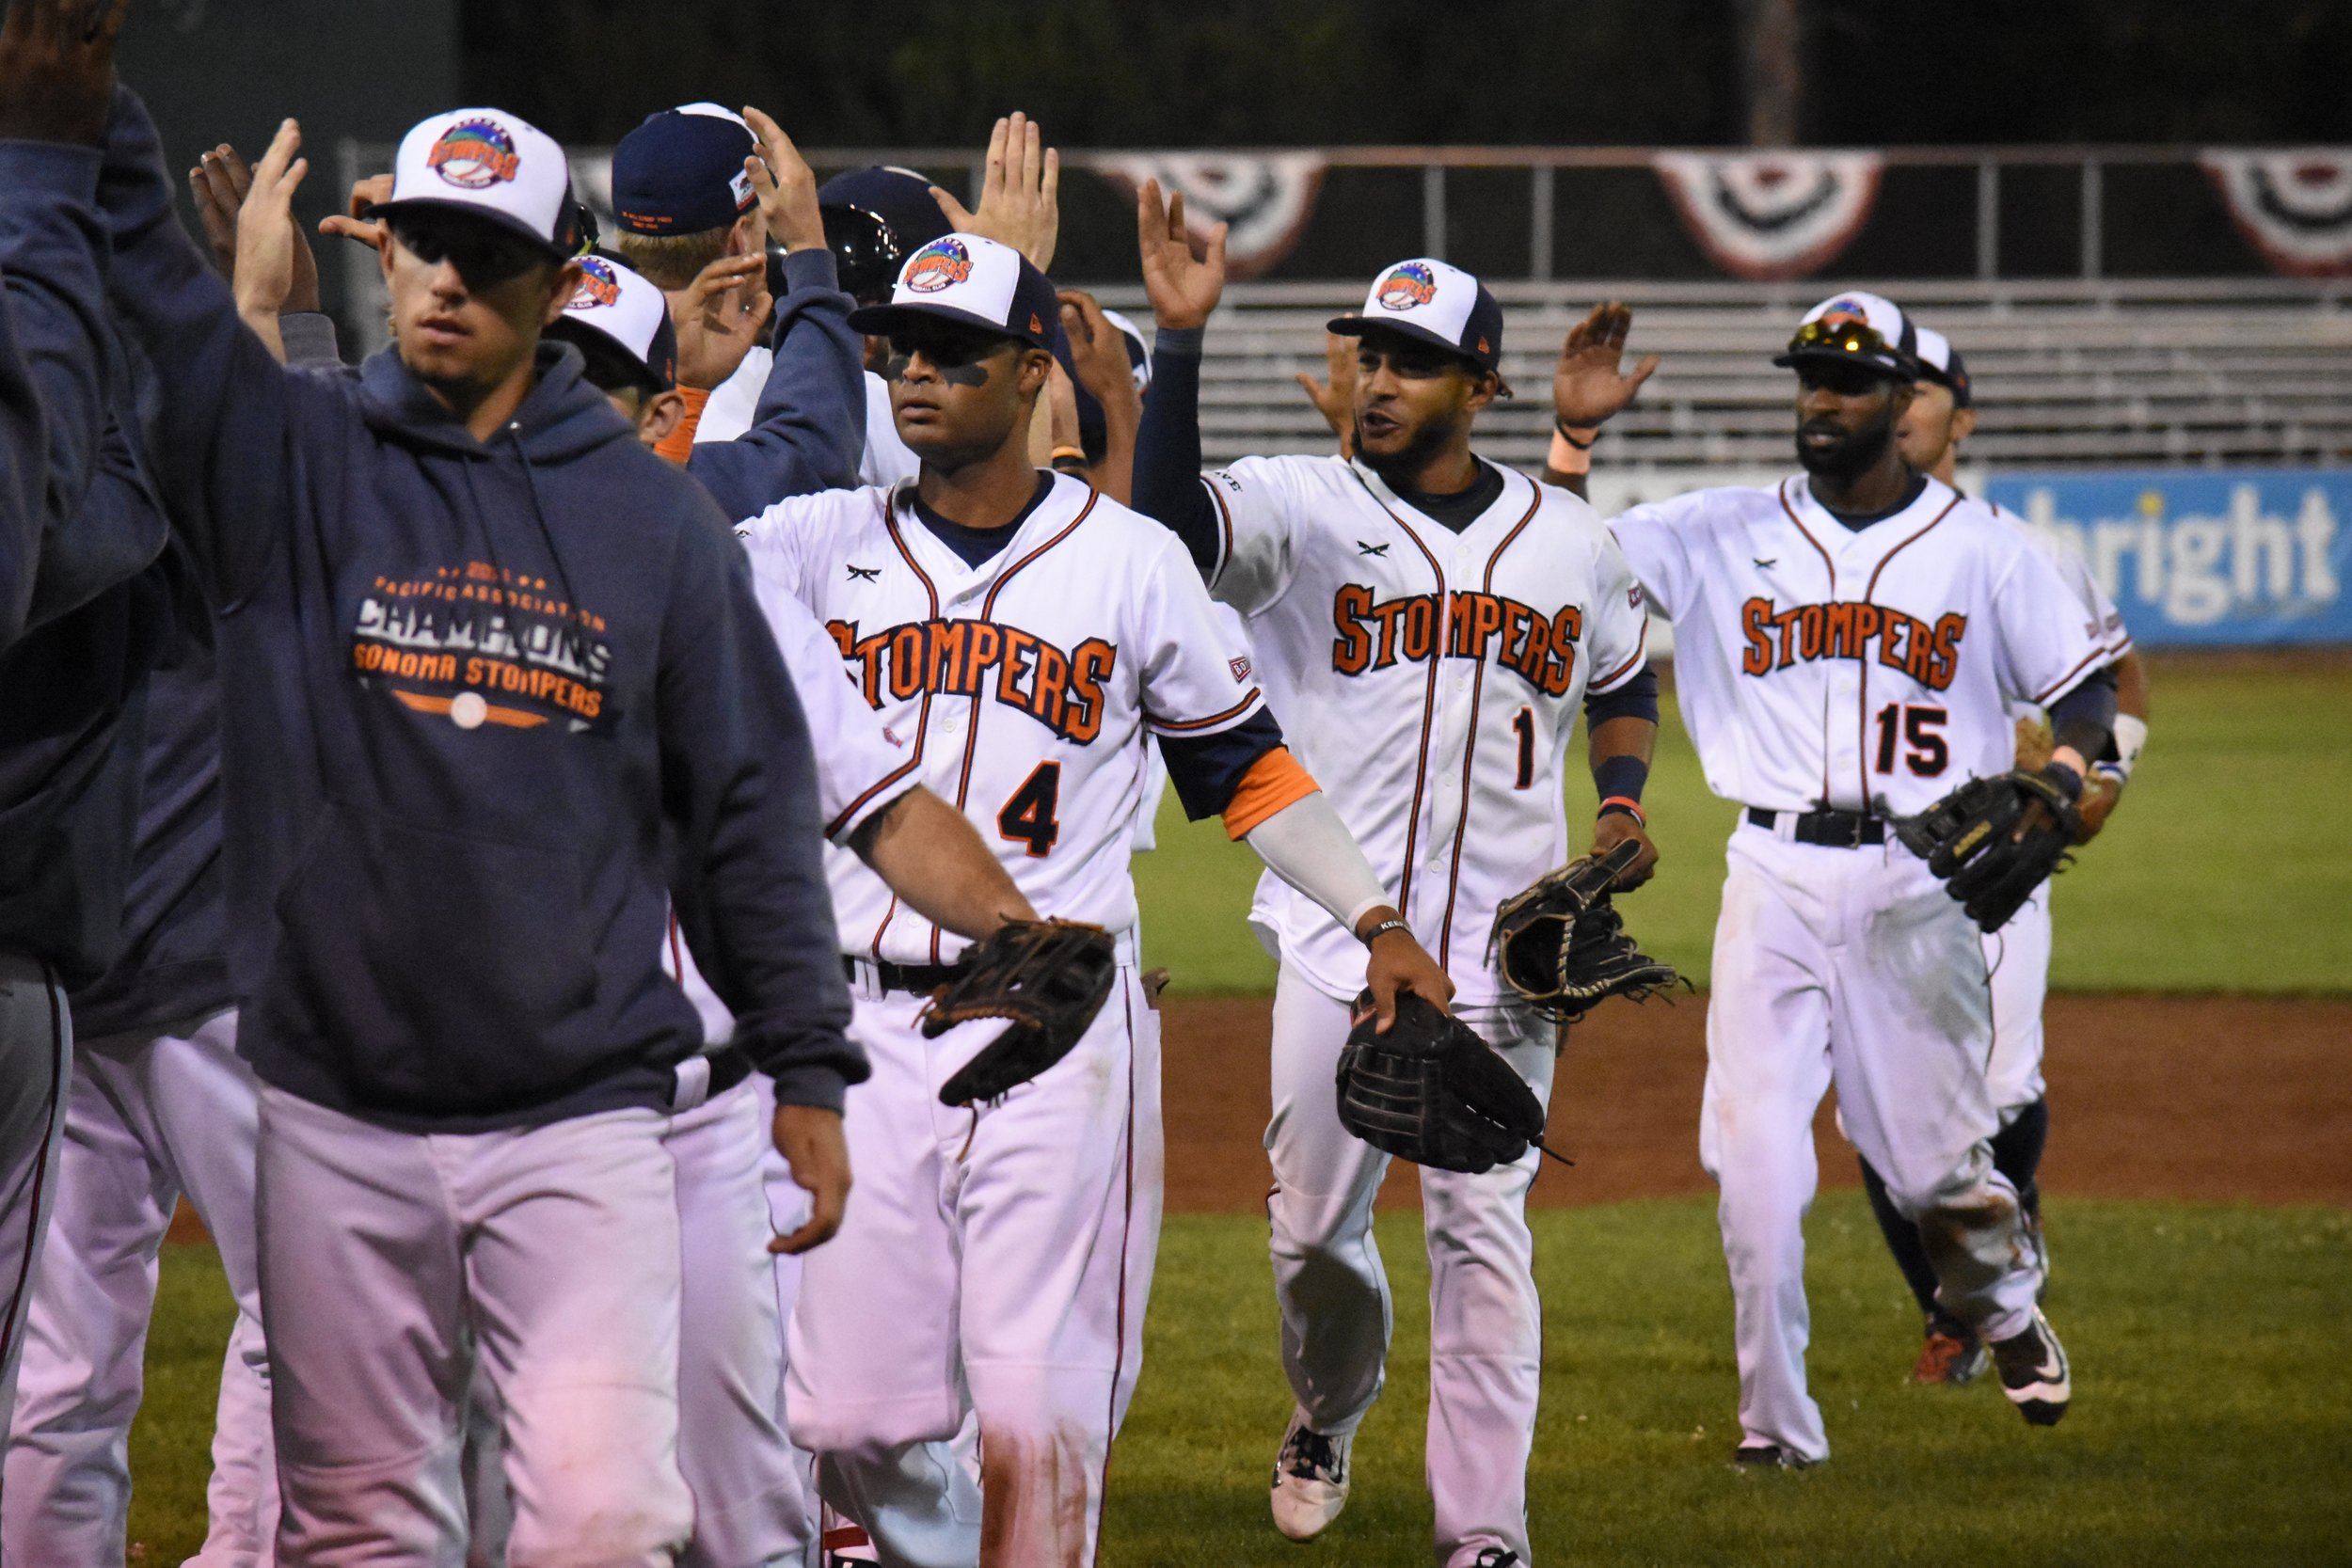 The Sonoma Stompers celebrate on the field at Peoples Home Equity Ballpark after securing a 6-5 win over the Vallejo Admirals in their last regular season home game on Sunday. (James W. Toy III / Sonoma Stompers)